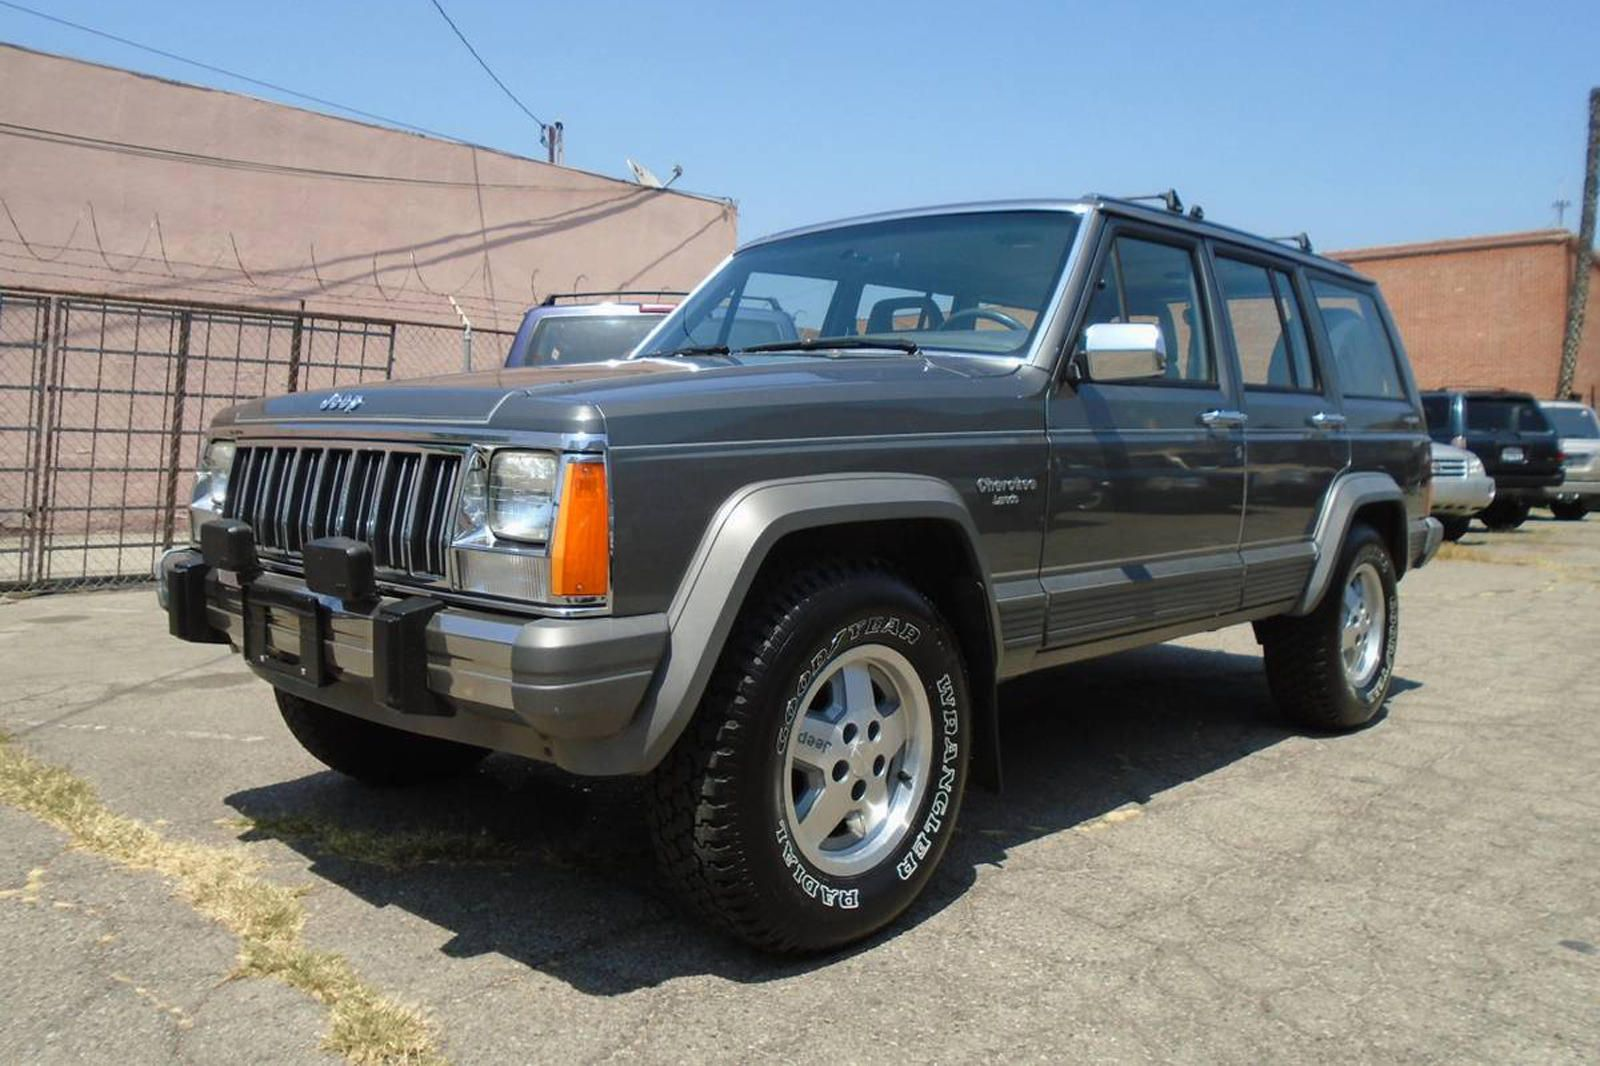 Weekly Craigslist Hidden Treasure 1988 Jeep Cherokee With A Manual Can You Spot Any Blemishes We Couldn T Jeep Cherokee Jeep Jeep Xj